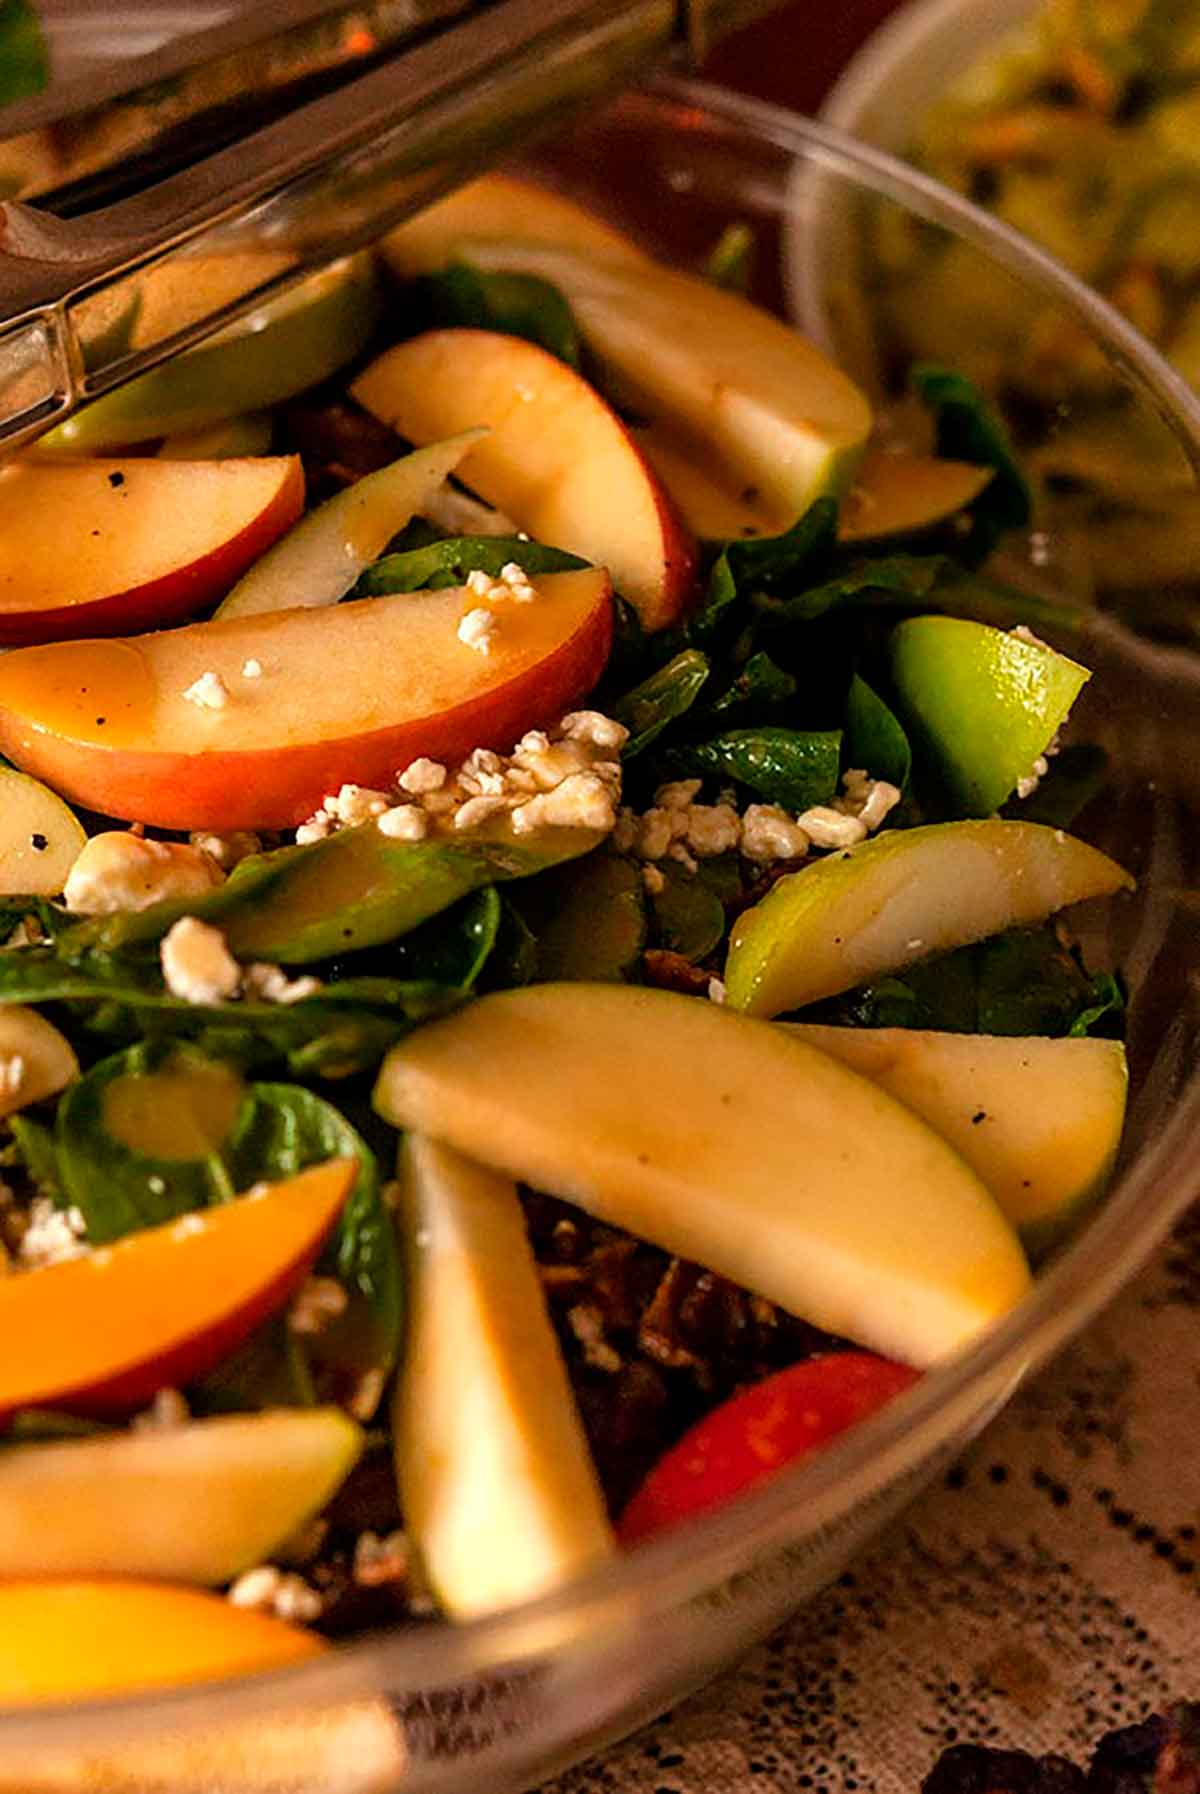 A large bowl of salad with apples, sprinkled with cheese.